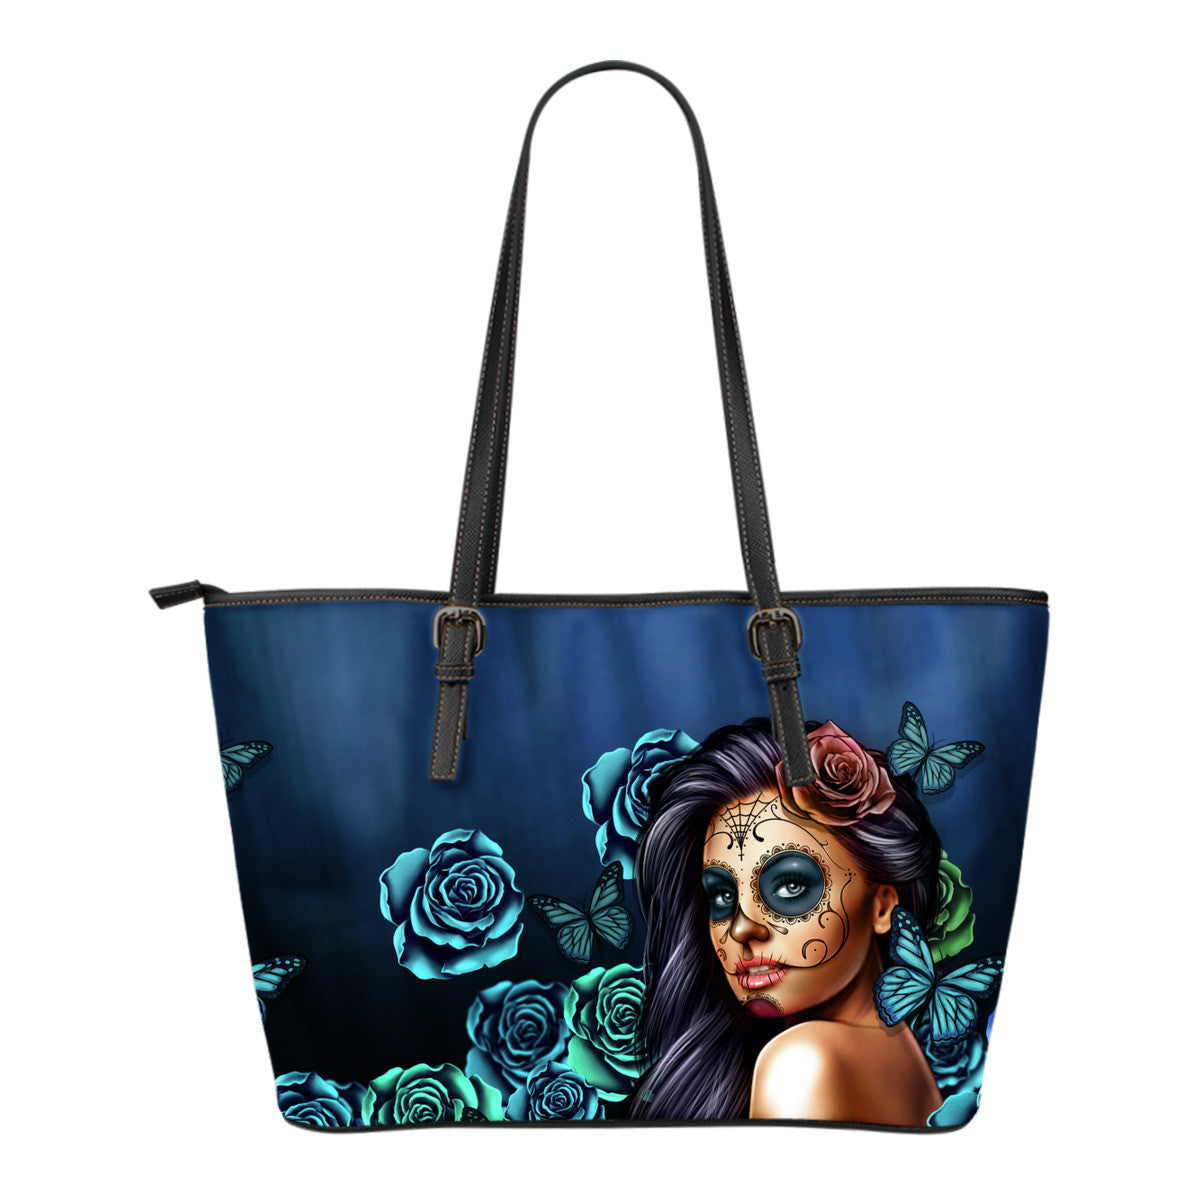 Calavera Girl Small Leather Totes